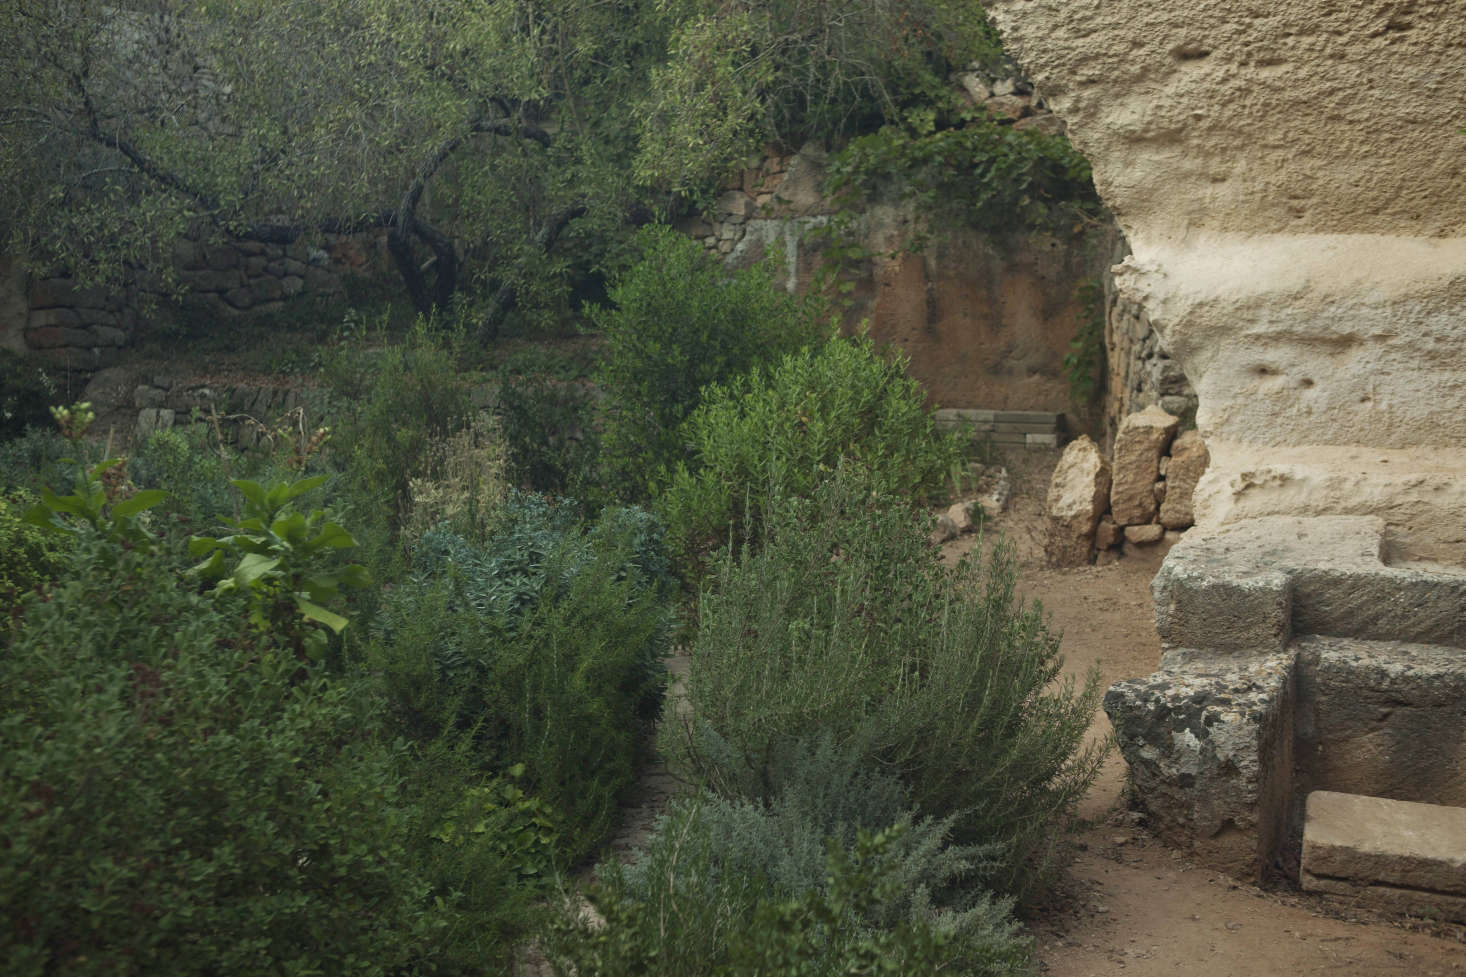 Lithica, a quarry garden in the Balearic Islands